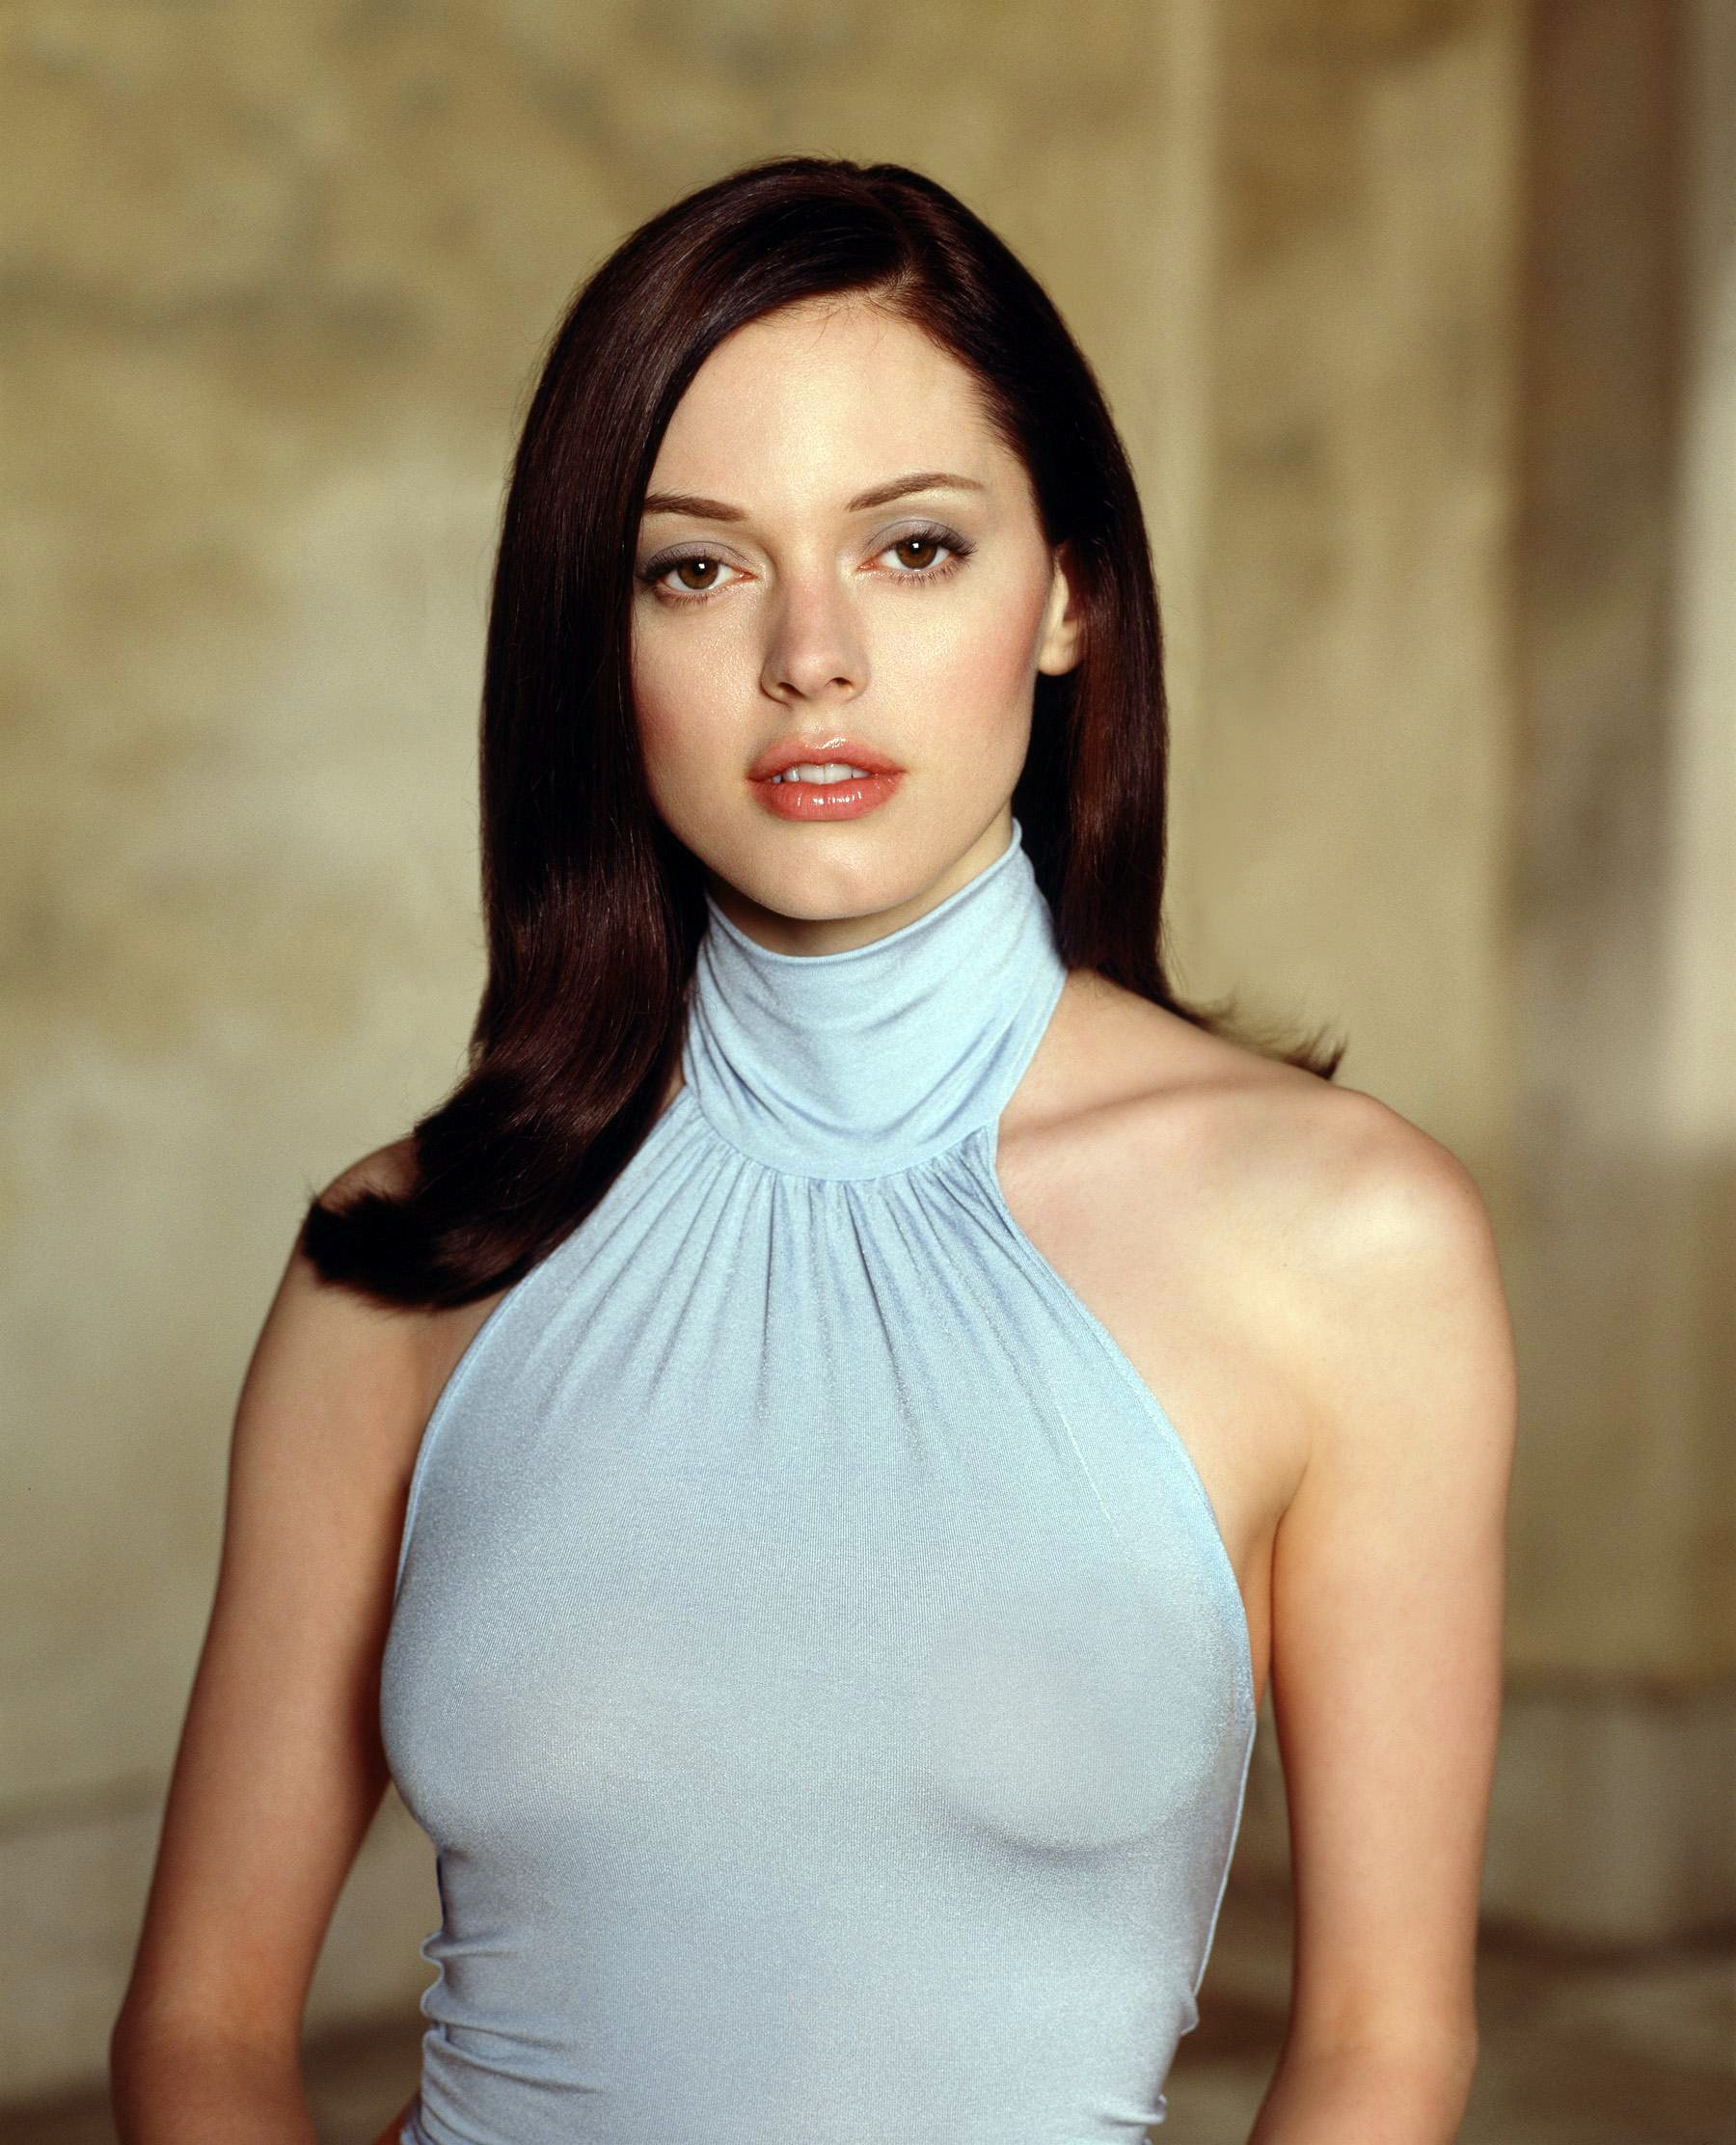 Rose Mcgowan HQ wallpapers